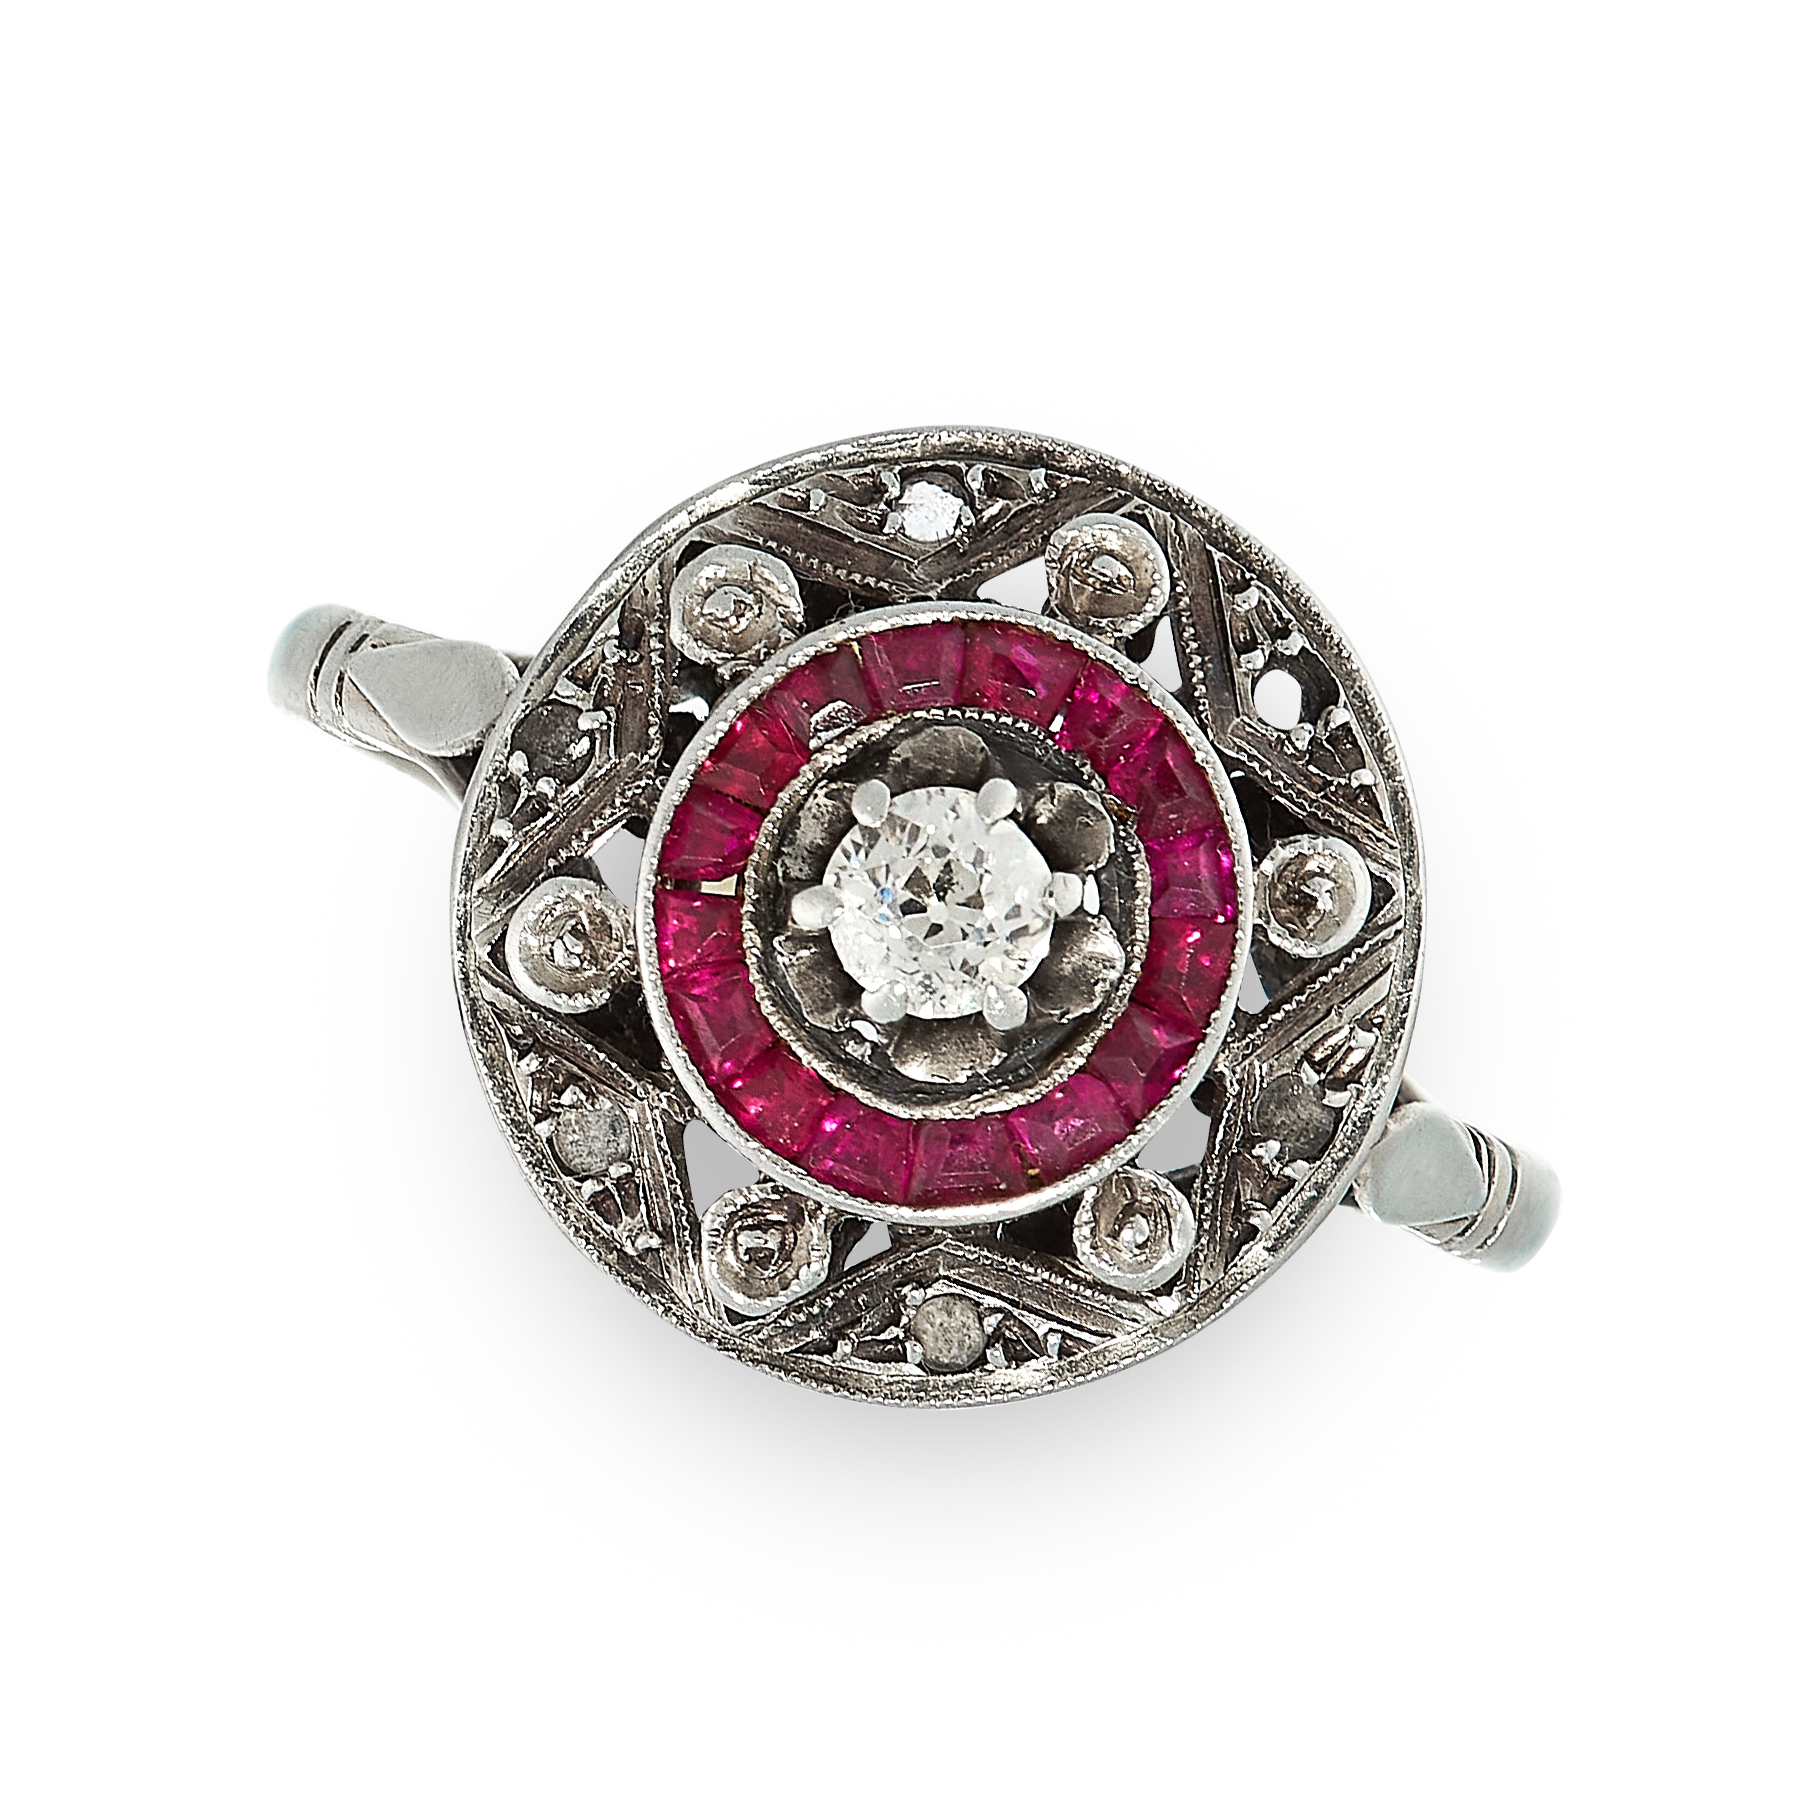 ART DECO RUBY AND DIAMOND TARGET RING the circular face is set with an old cut diamond in a border